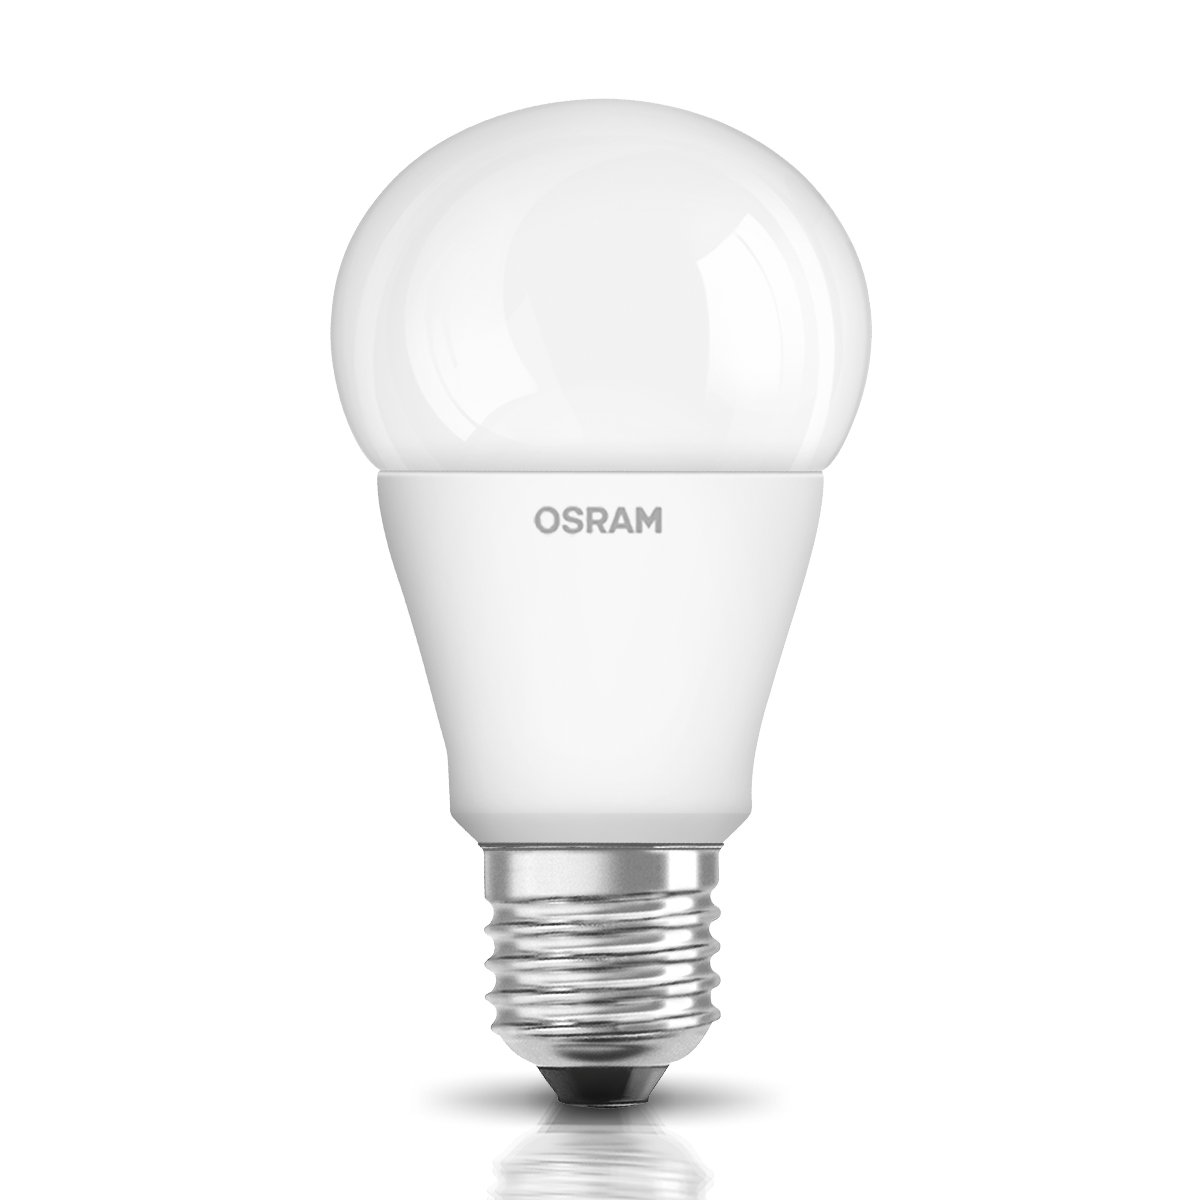 OSRAM ampoule LED dimmable E27 Superstar Classic A / 10 W - Equivalence incandescence 75 W, ampoule LED forme classique / mat, blanc froid - 4000K